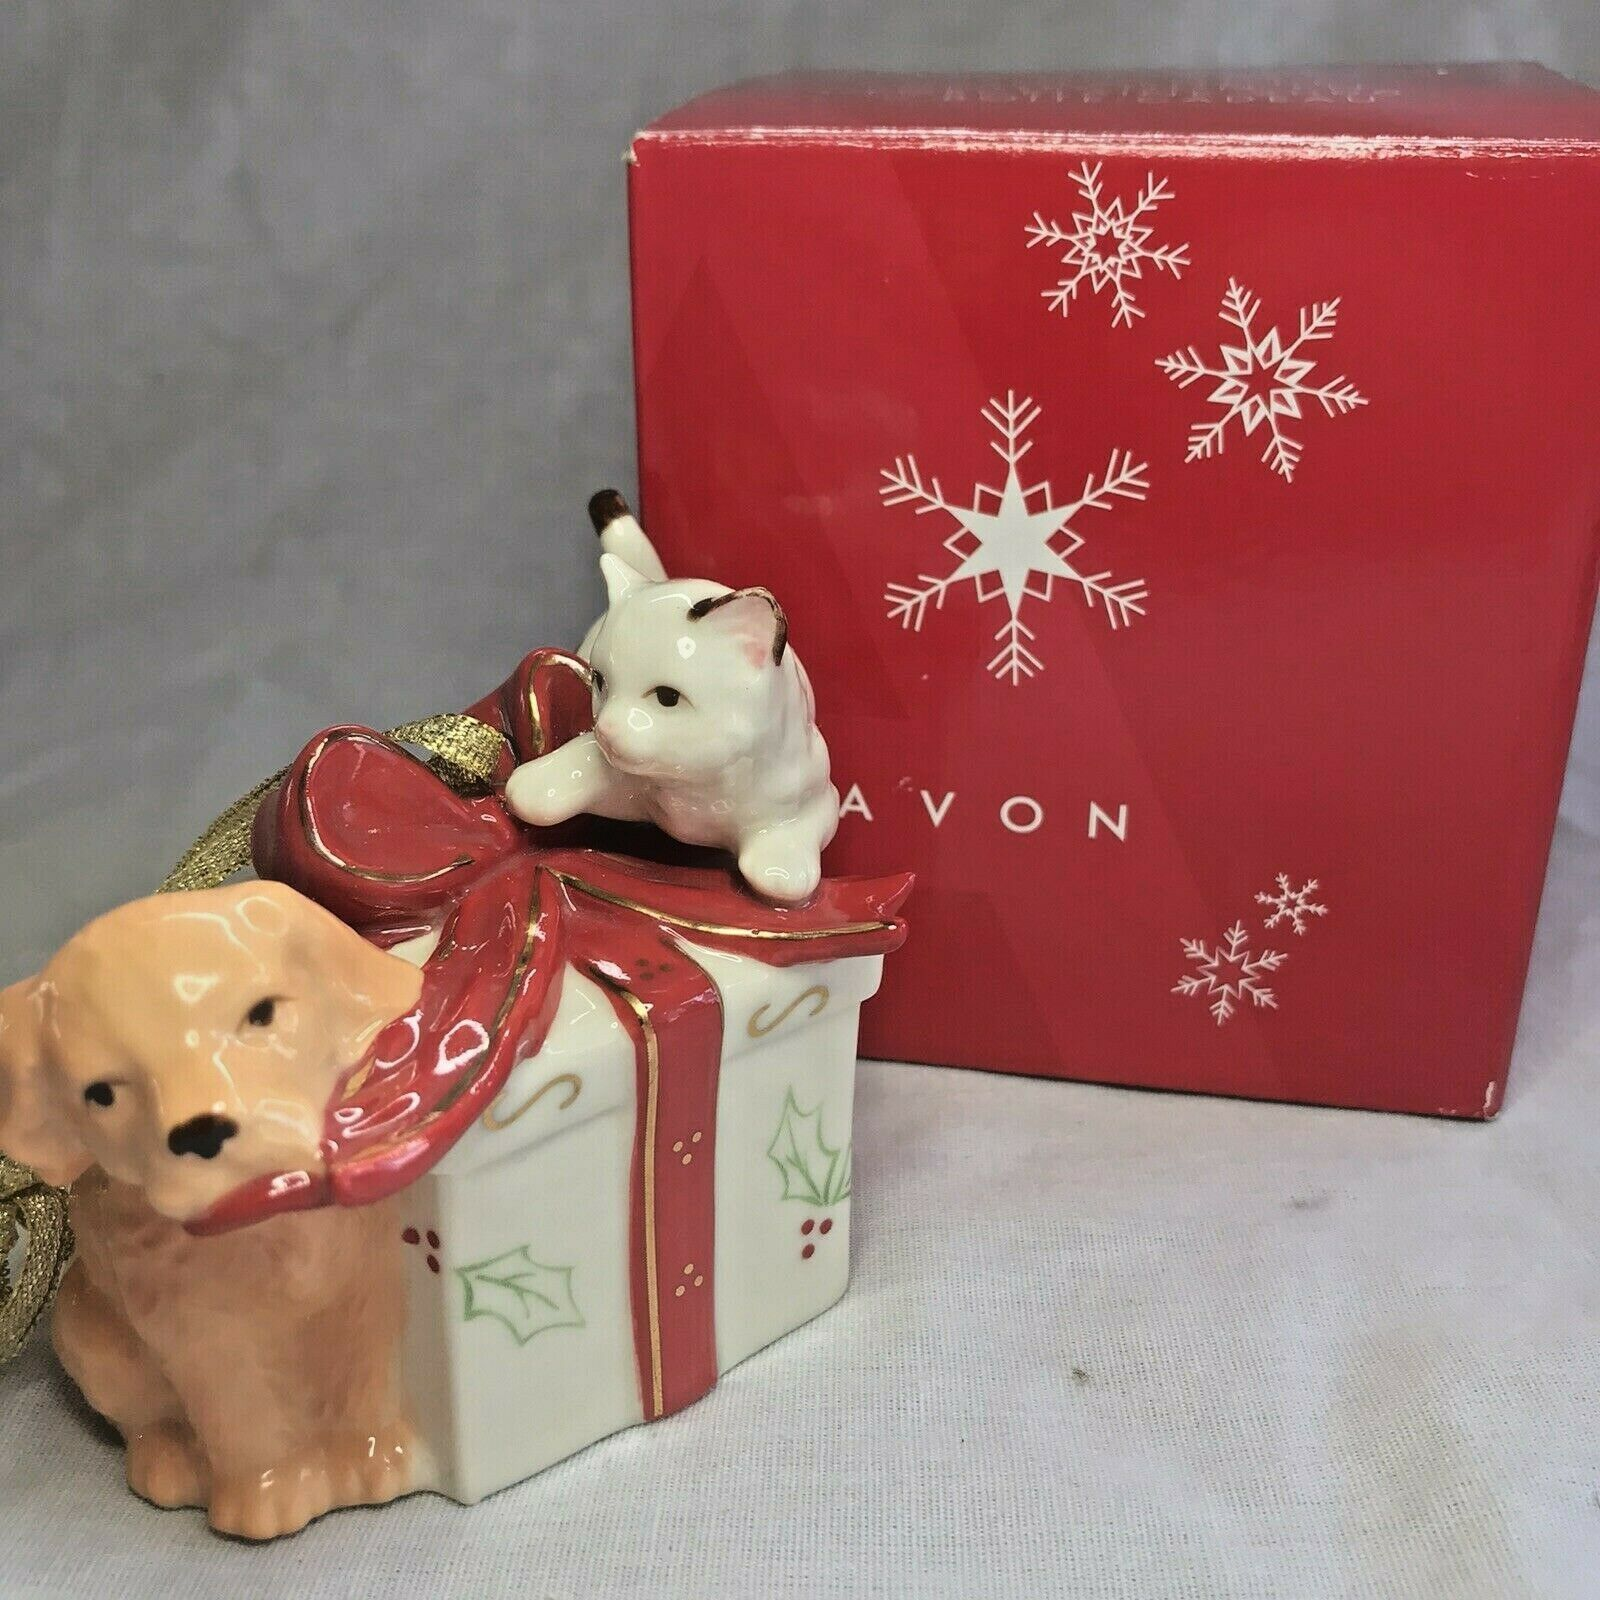 Avon 2006 Collectible Porcelain Gift Box Ornament Christmas Decoration Xmas